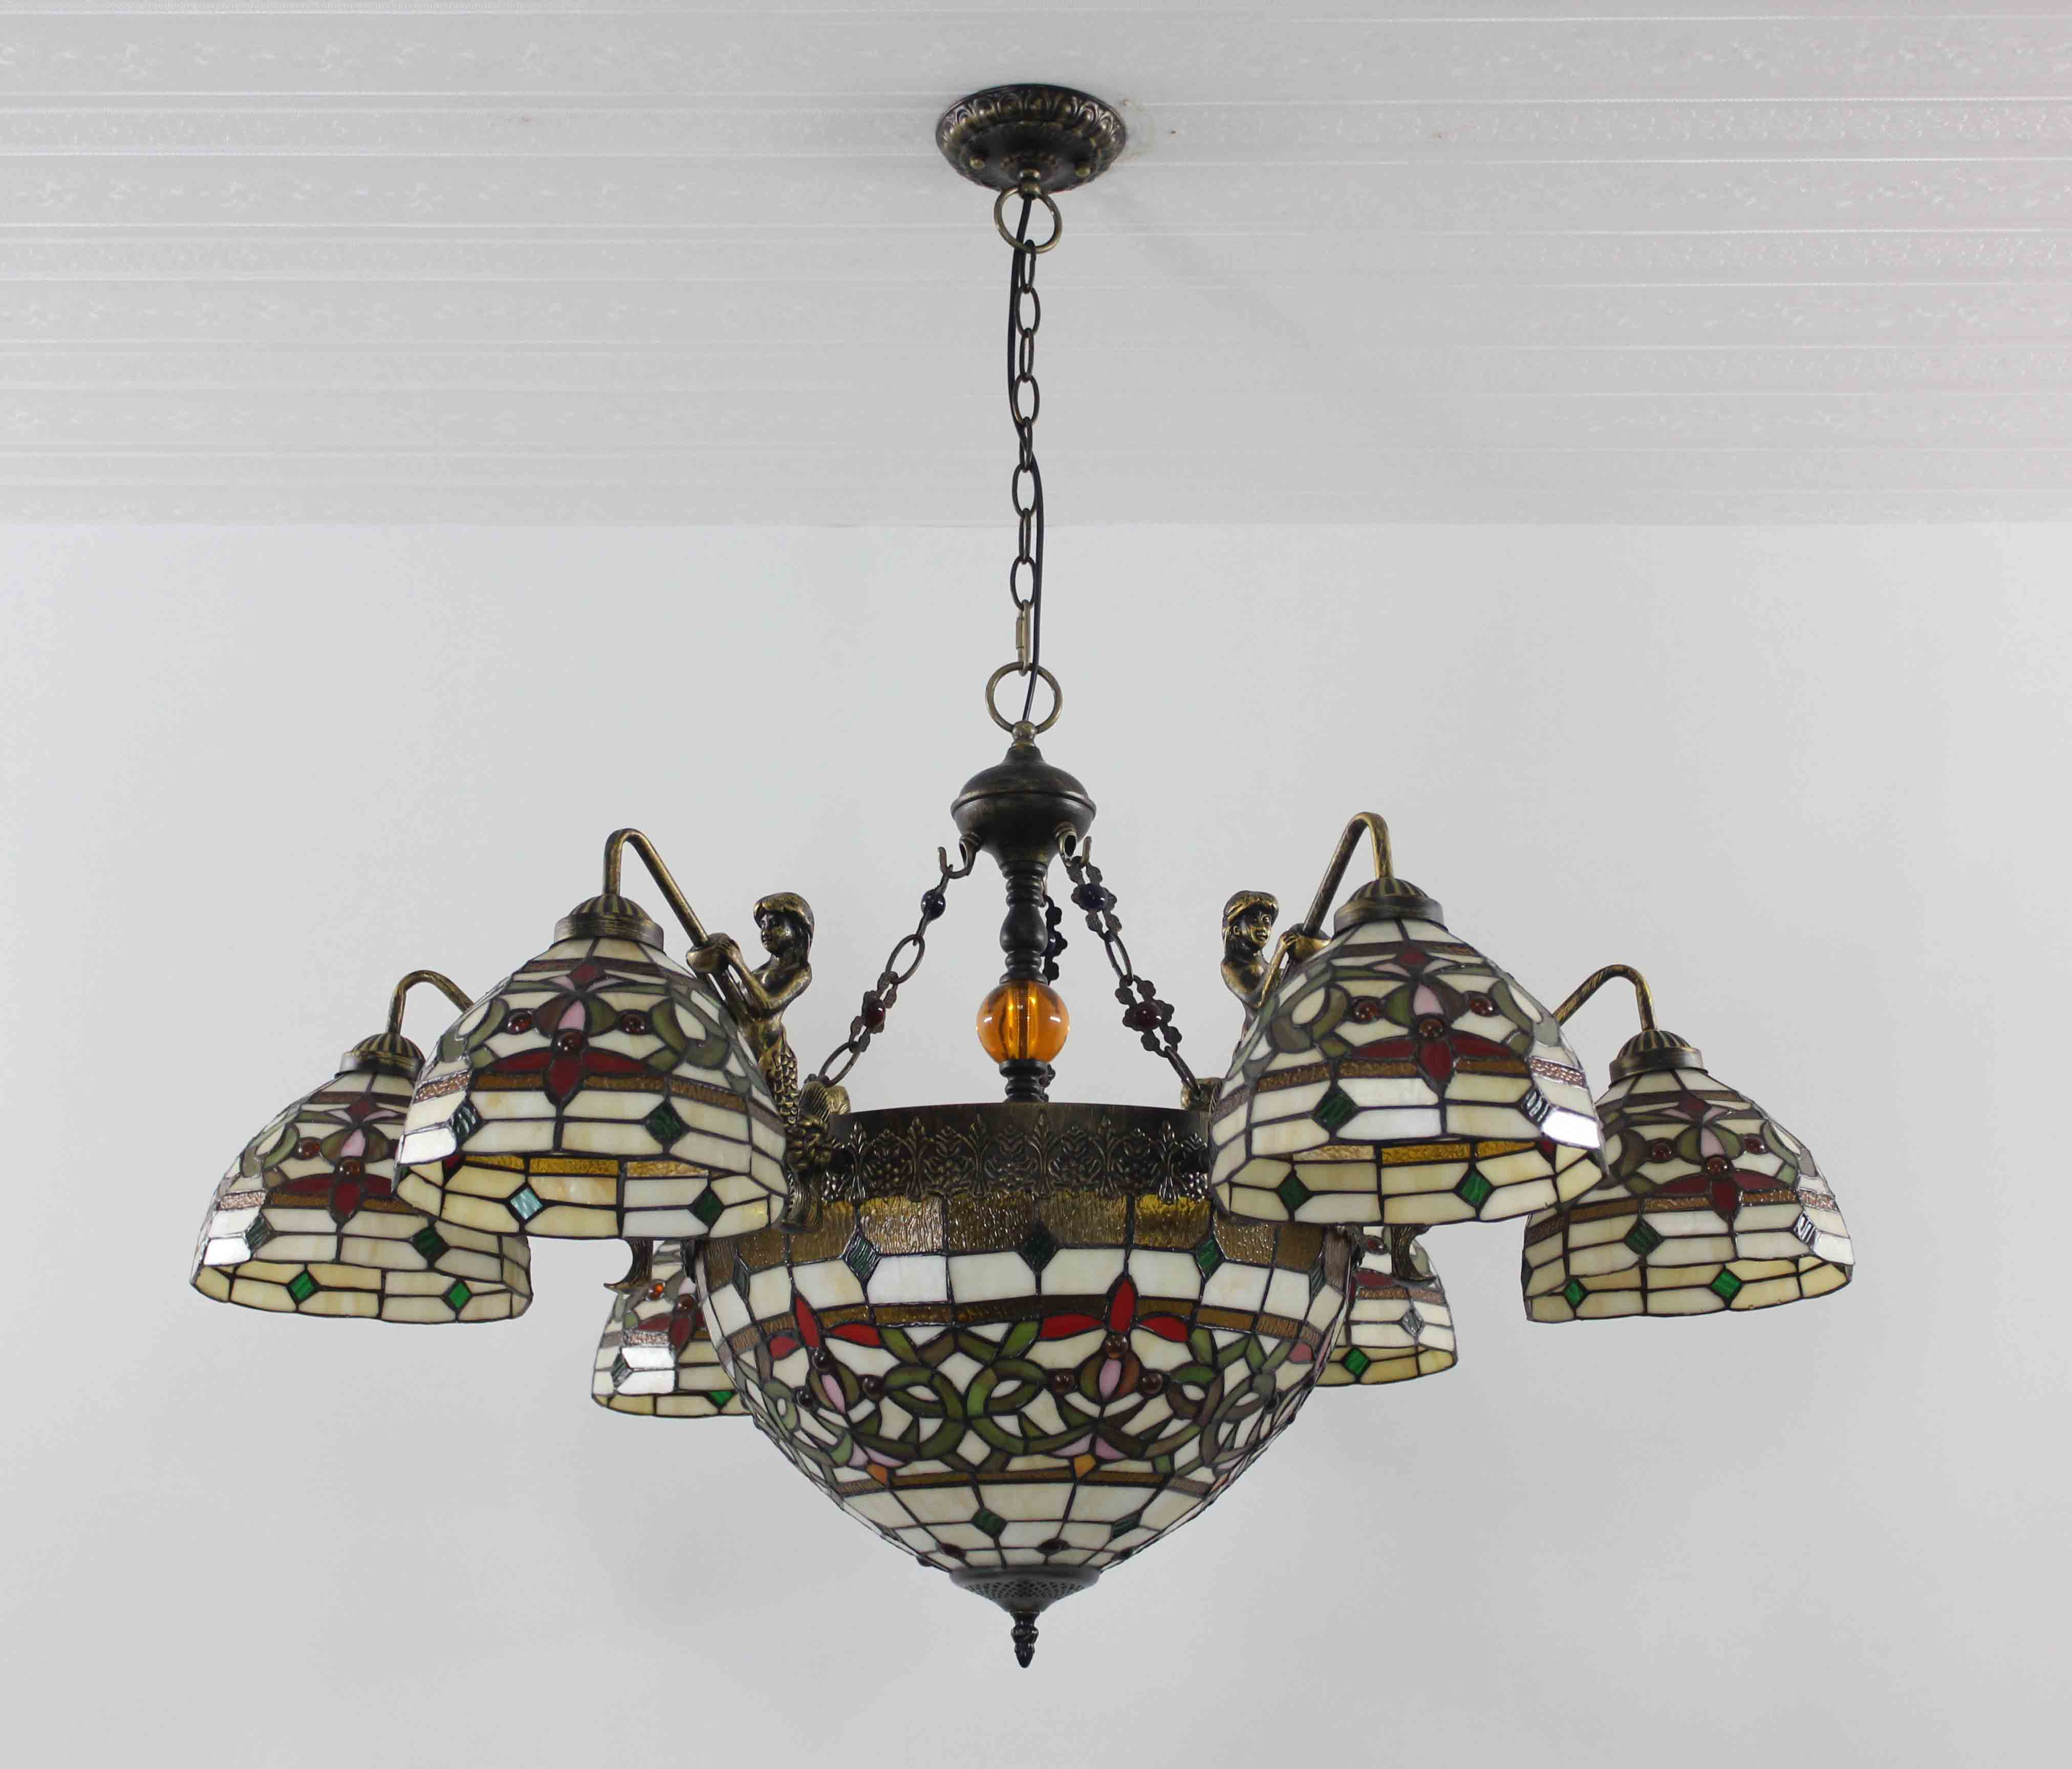 Tiffany Chandelier Stained Glass Lamp Ceiling Pendant